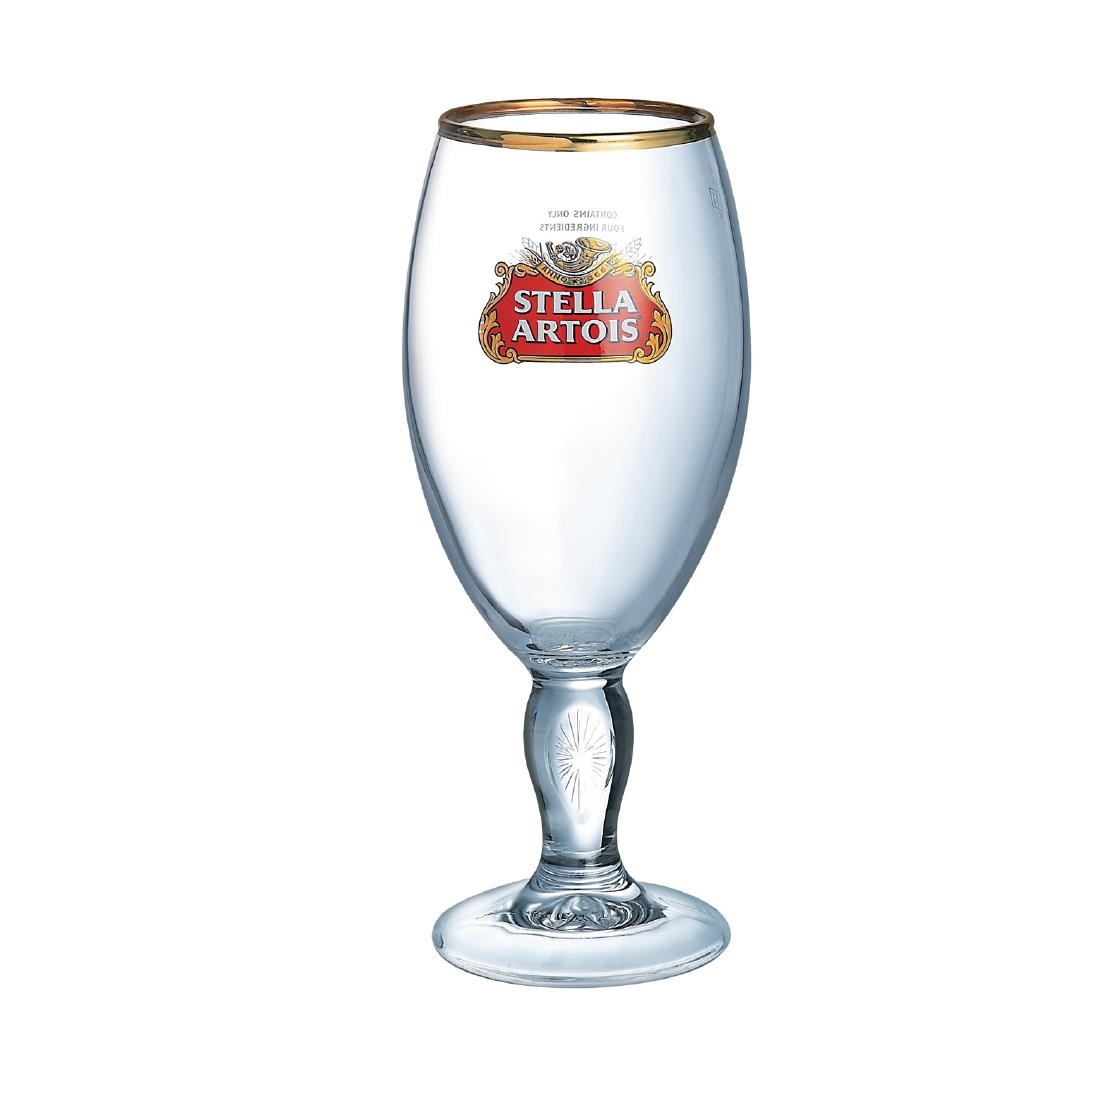 Image of Arcoroc Stella Artois Chalice Beer Glasses 570ml (Pack of 24) Pack of 24